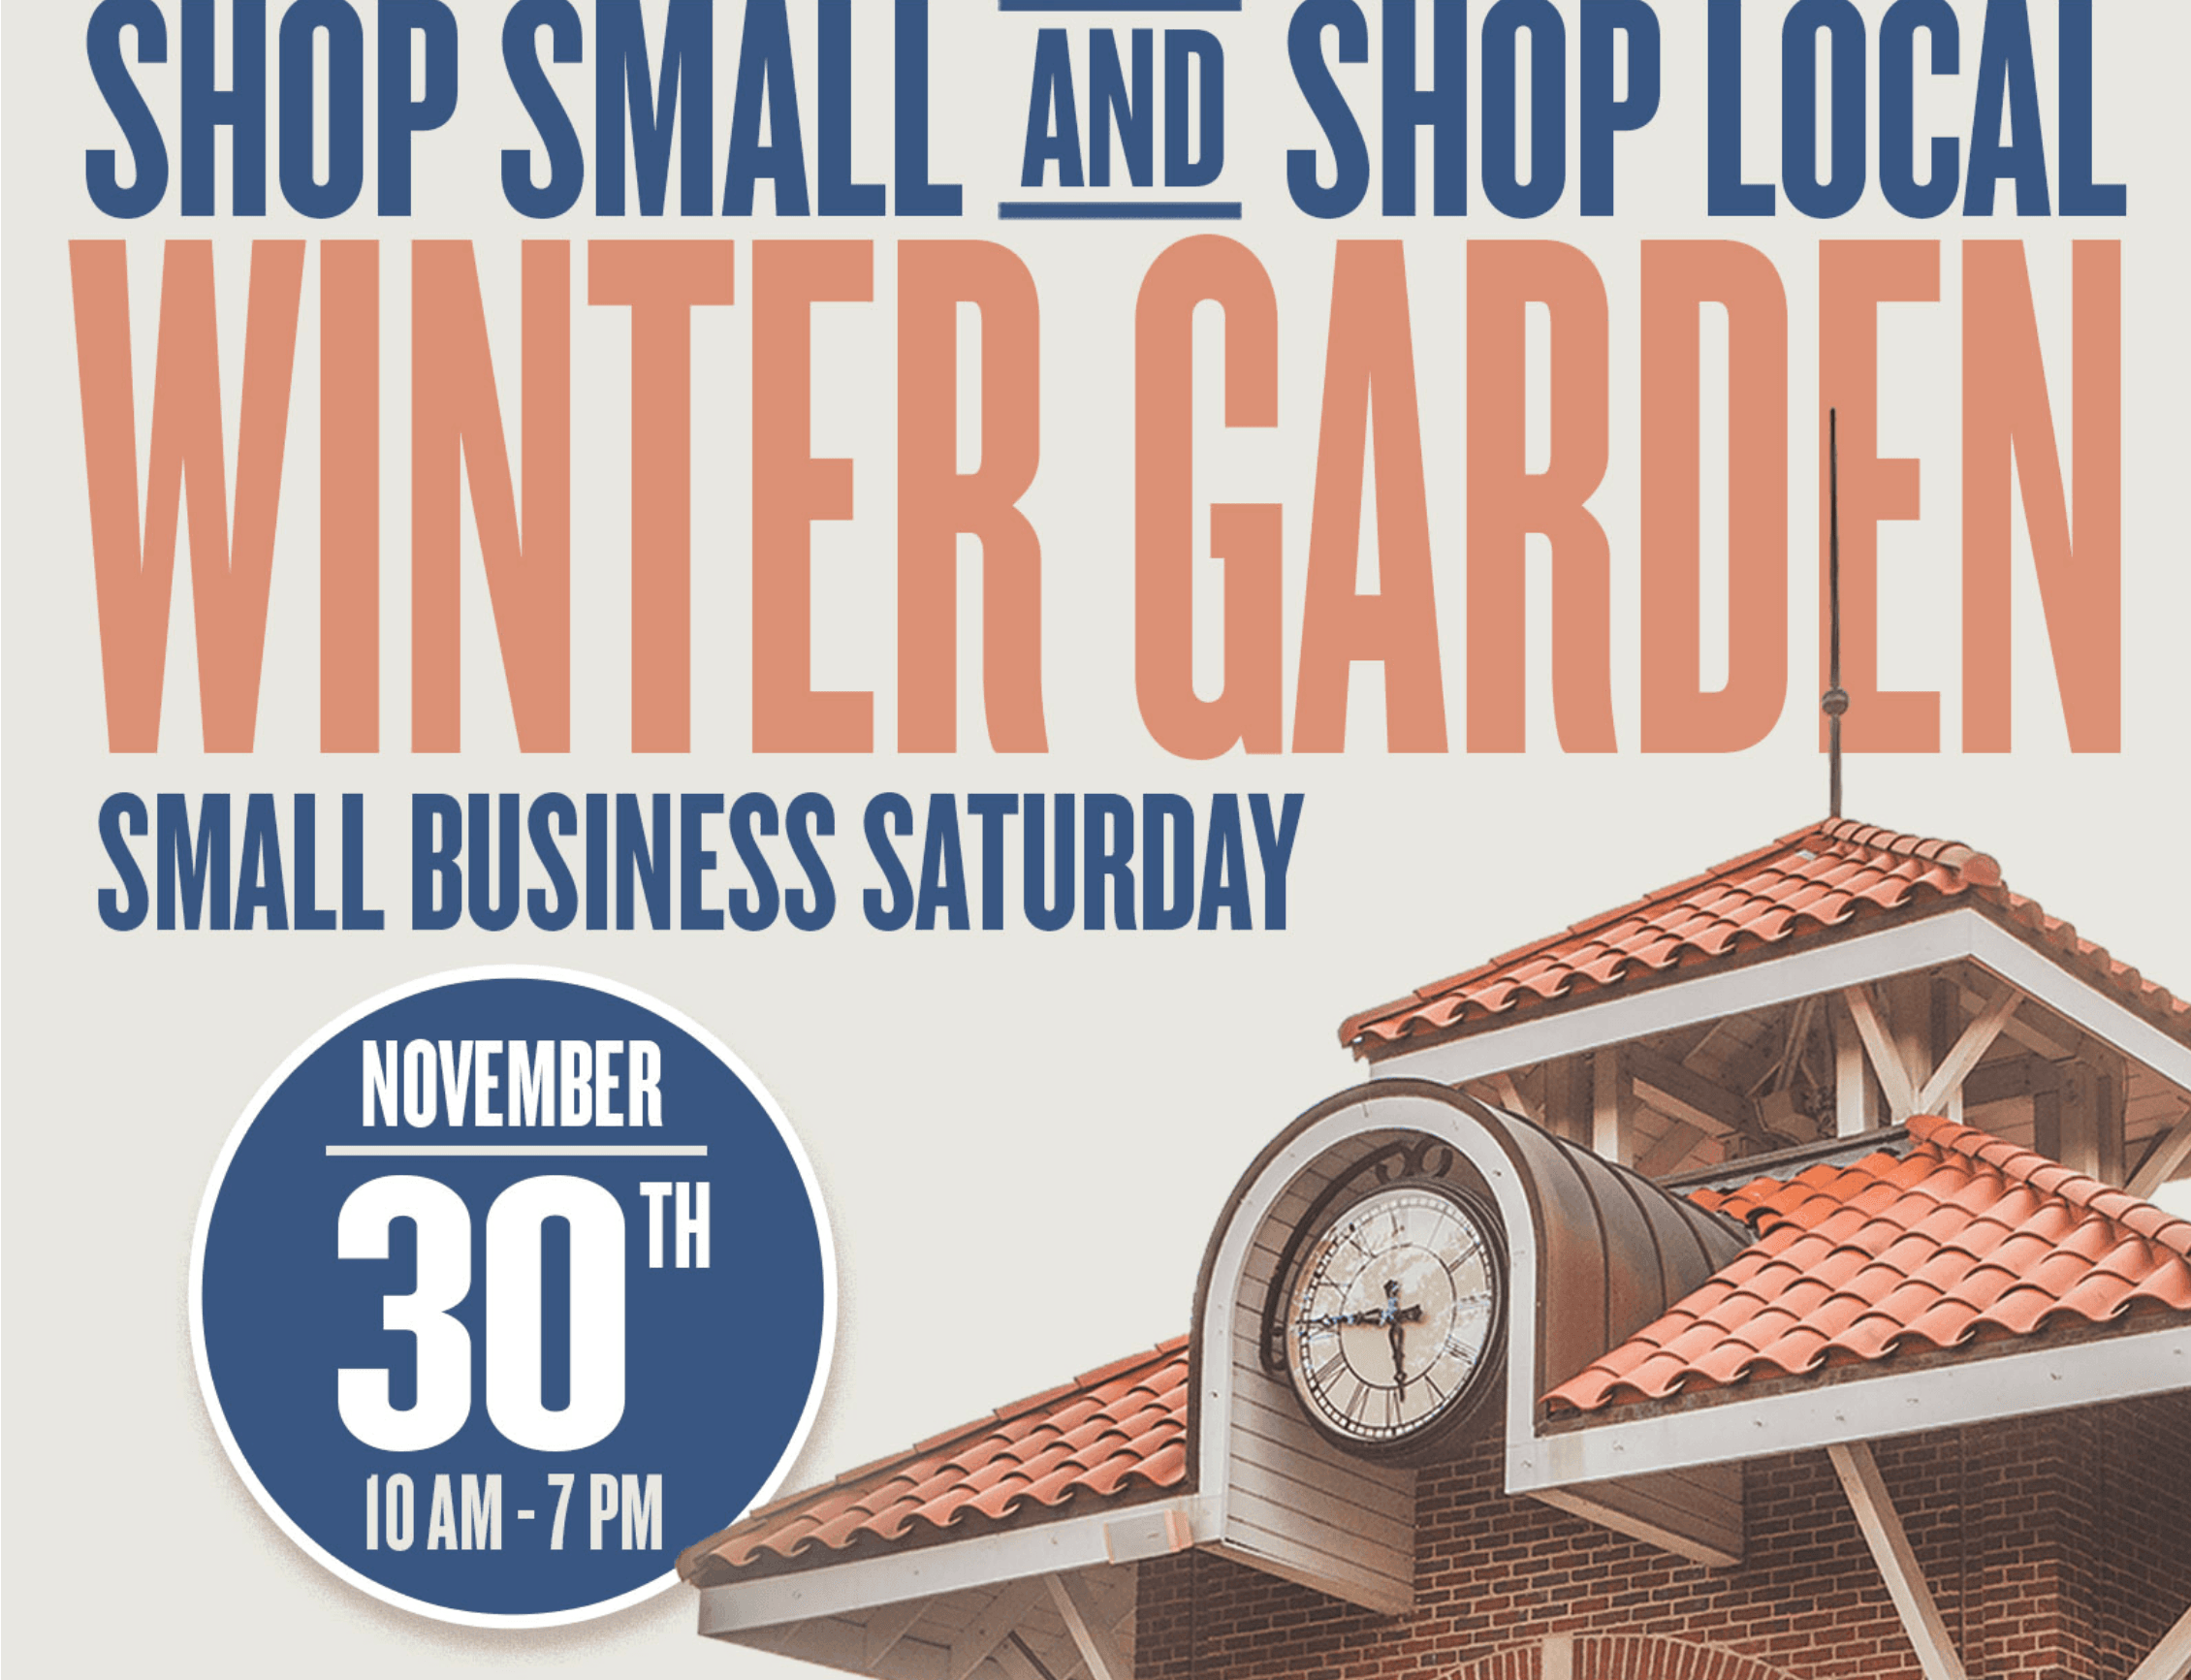 Flier with Shop Small Logo in blue and orange